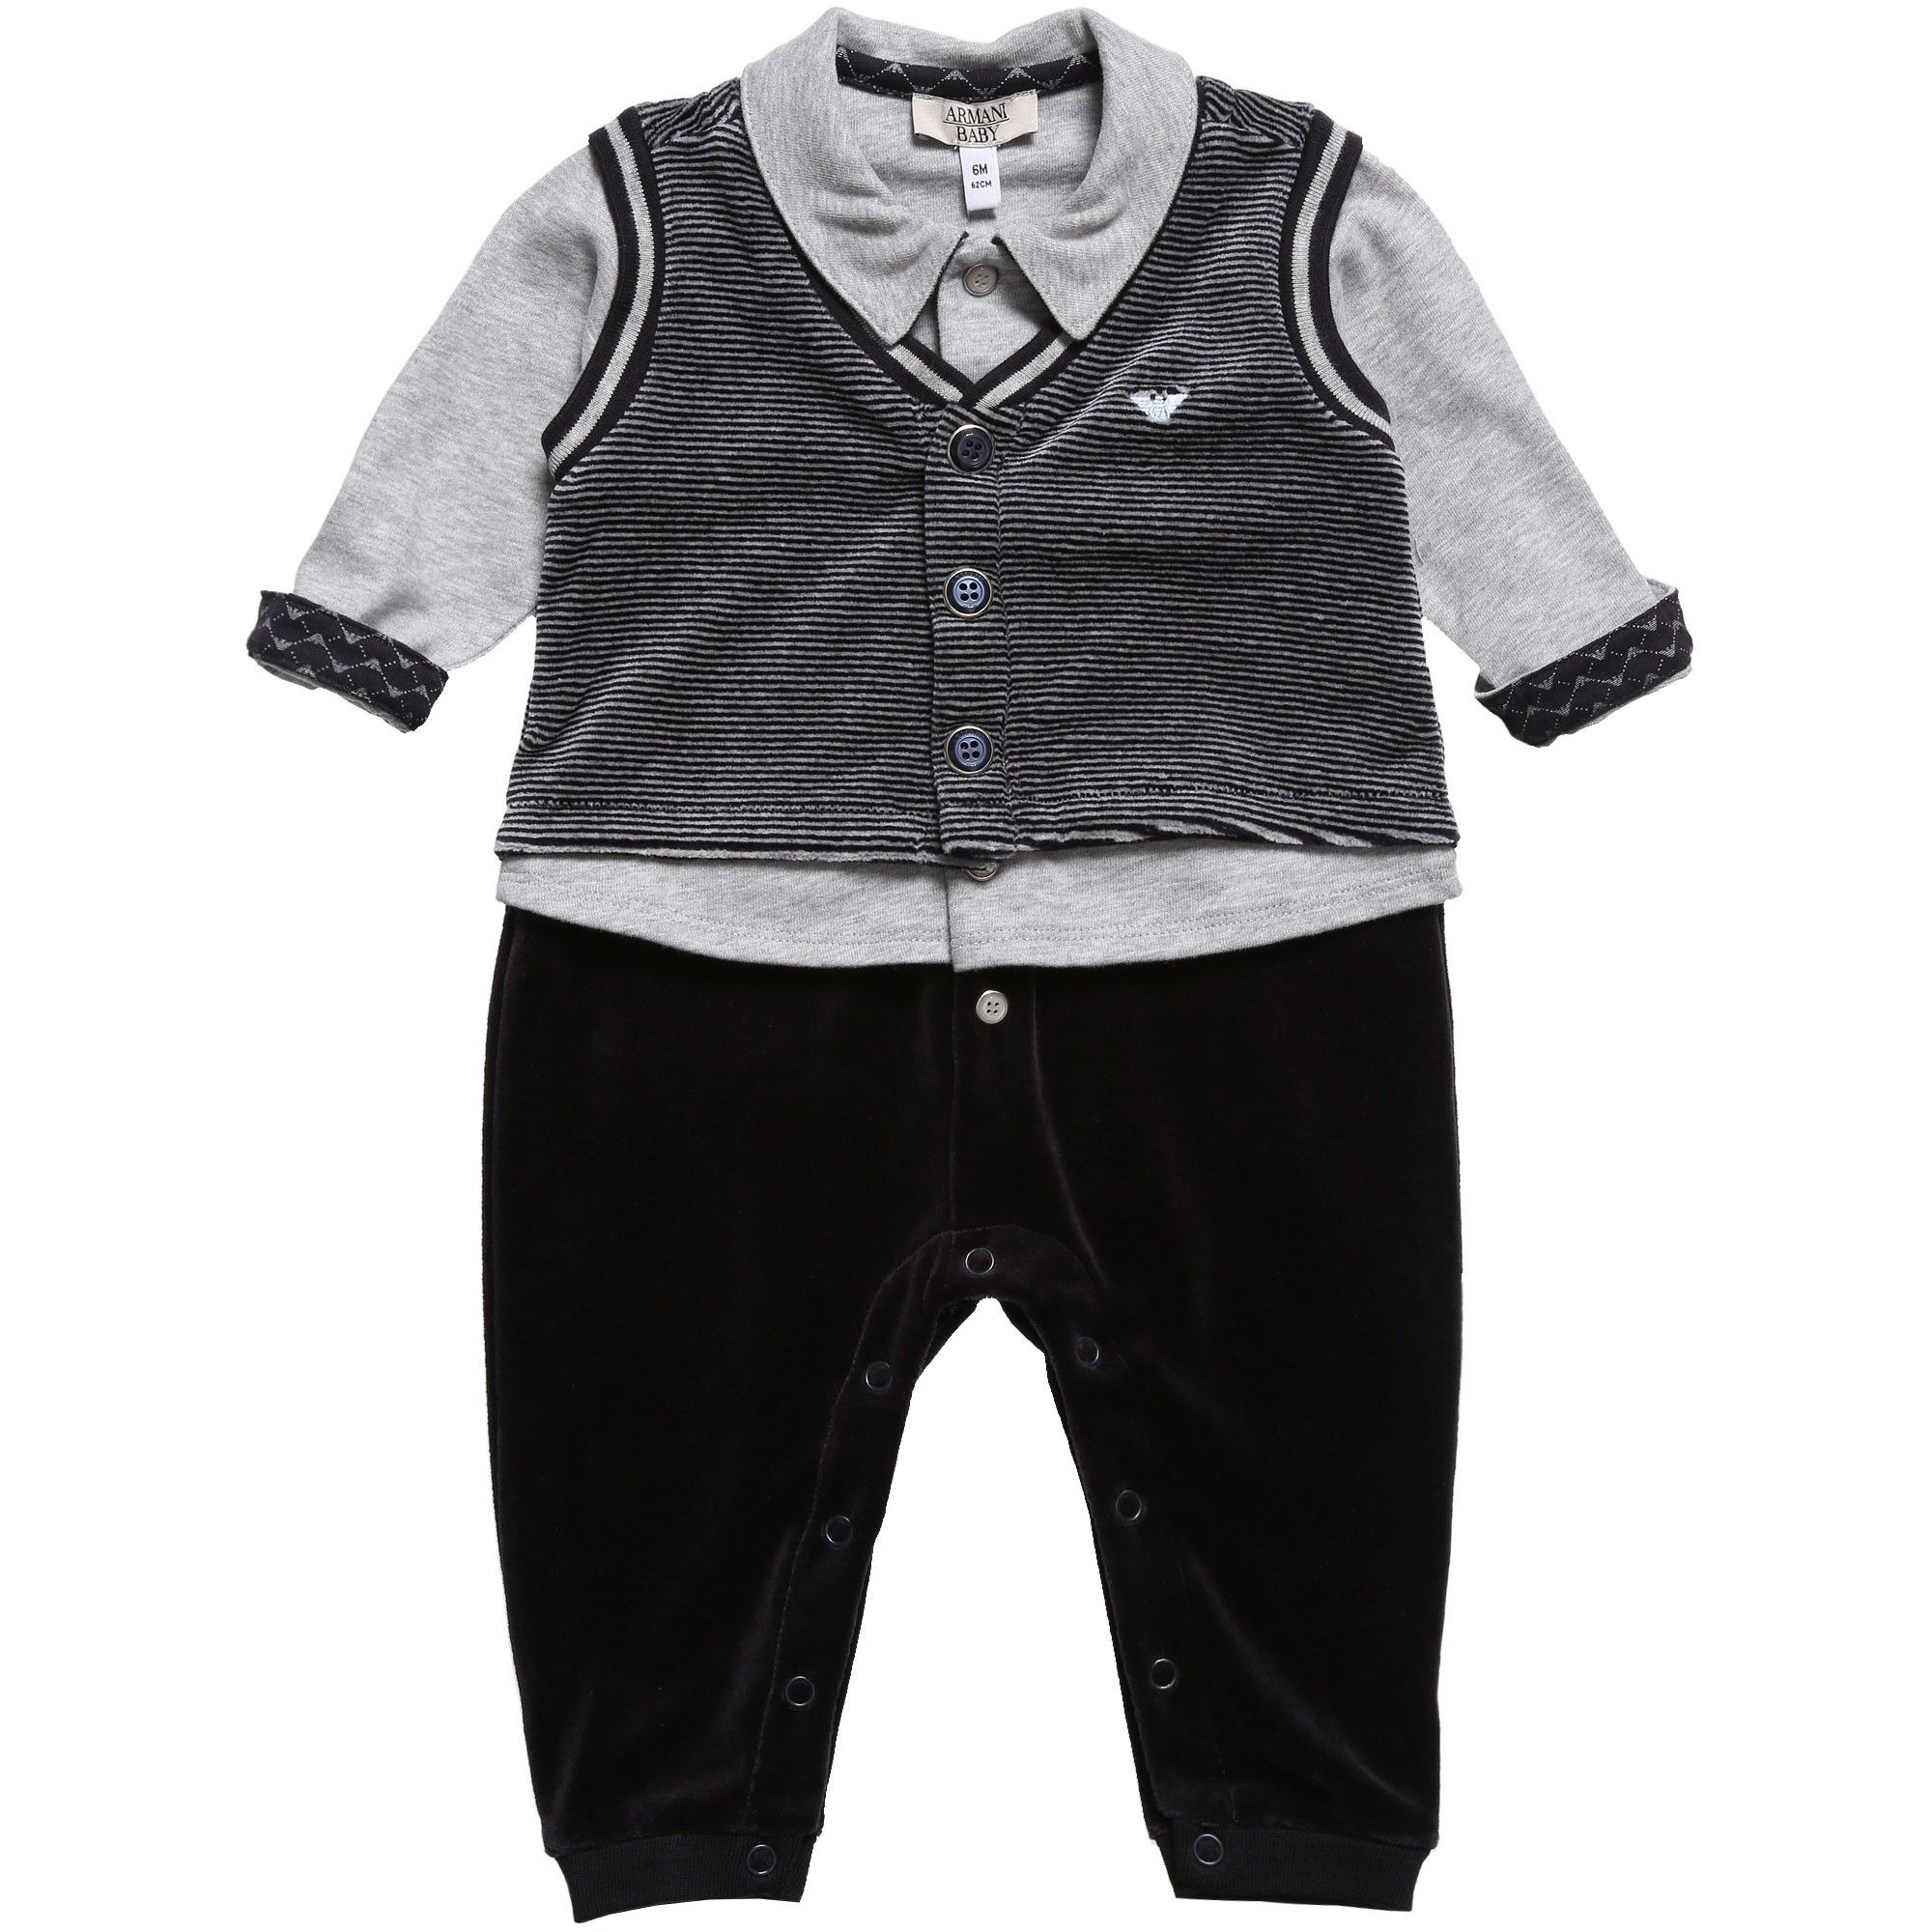 25cd257d32b6 Armani Baby - Boys Navy Blue Velour Outfit